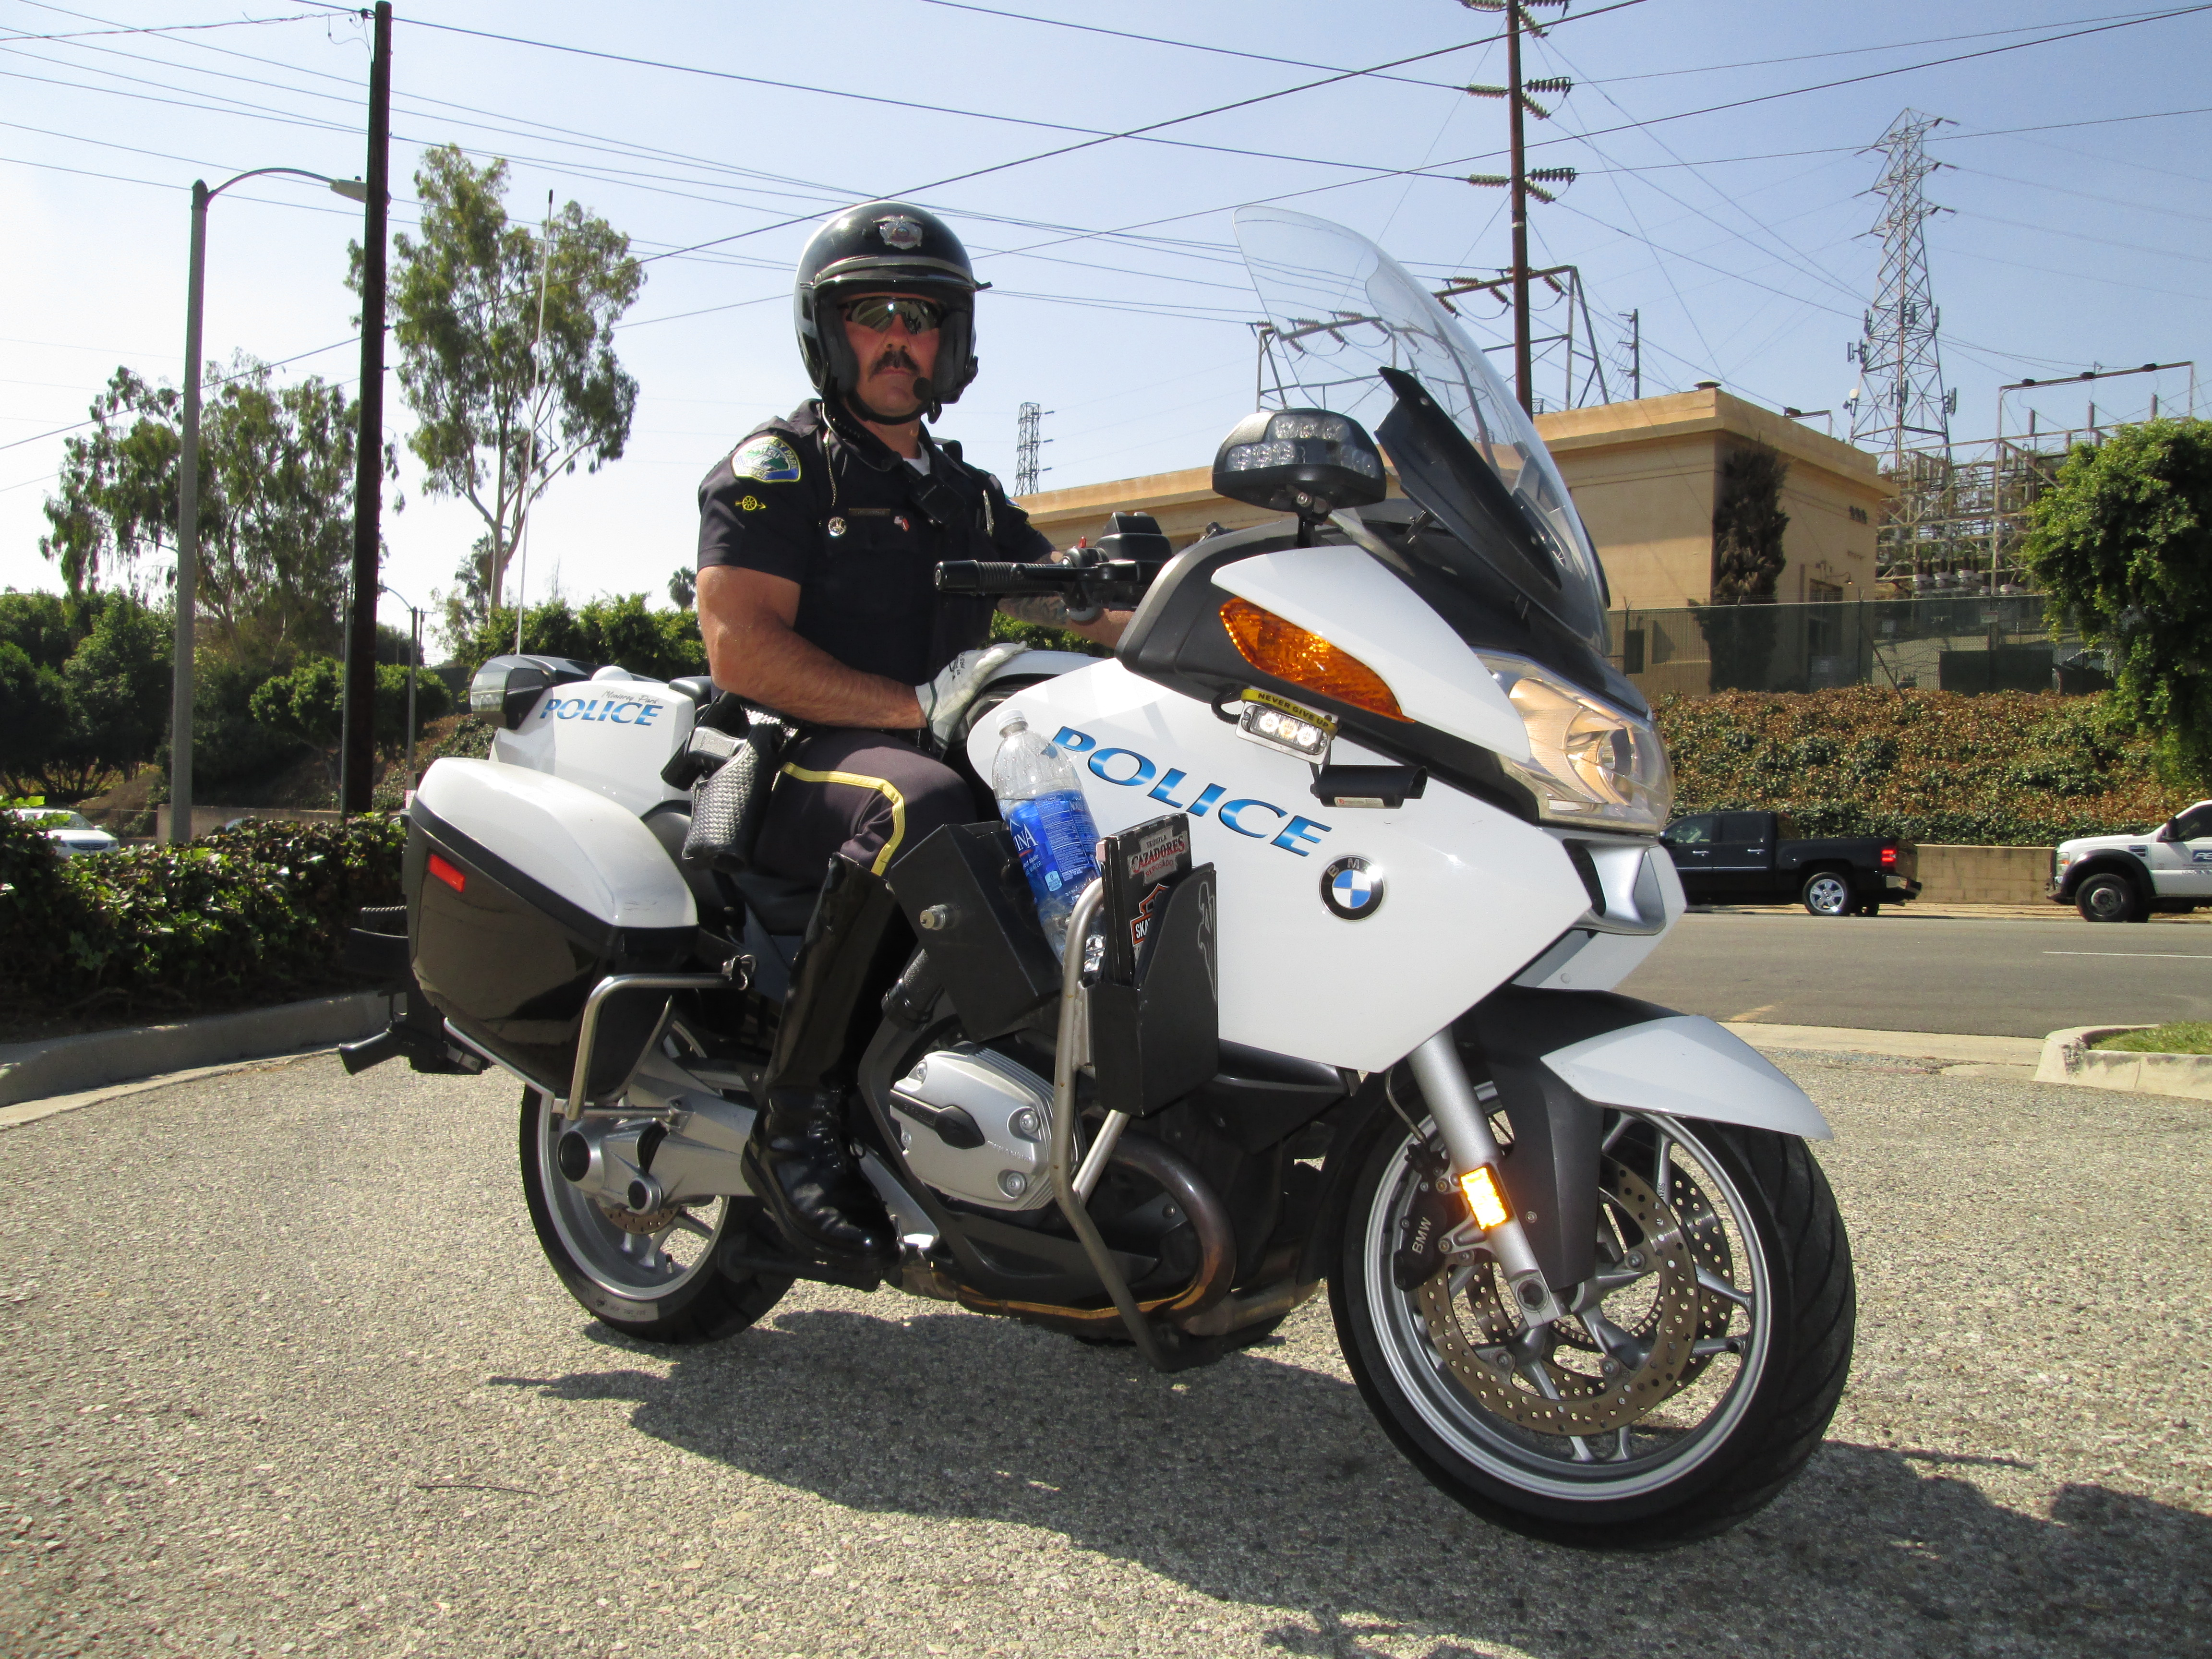 Officer on Motorcycle